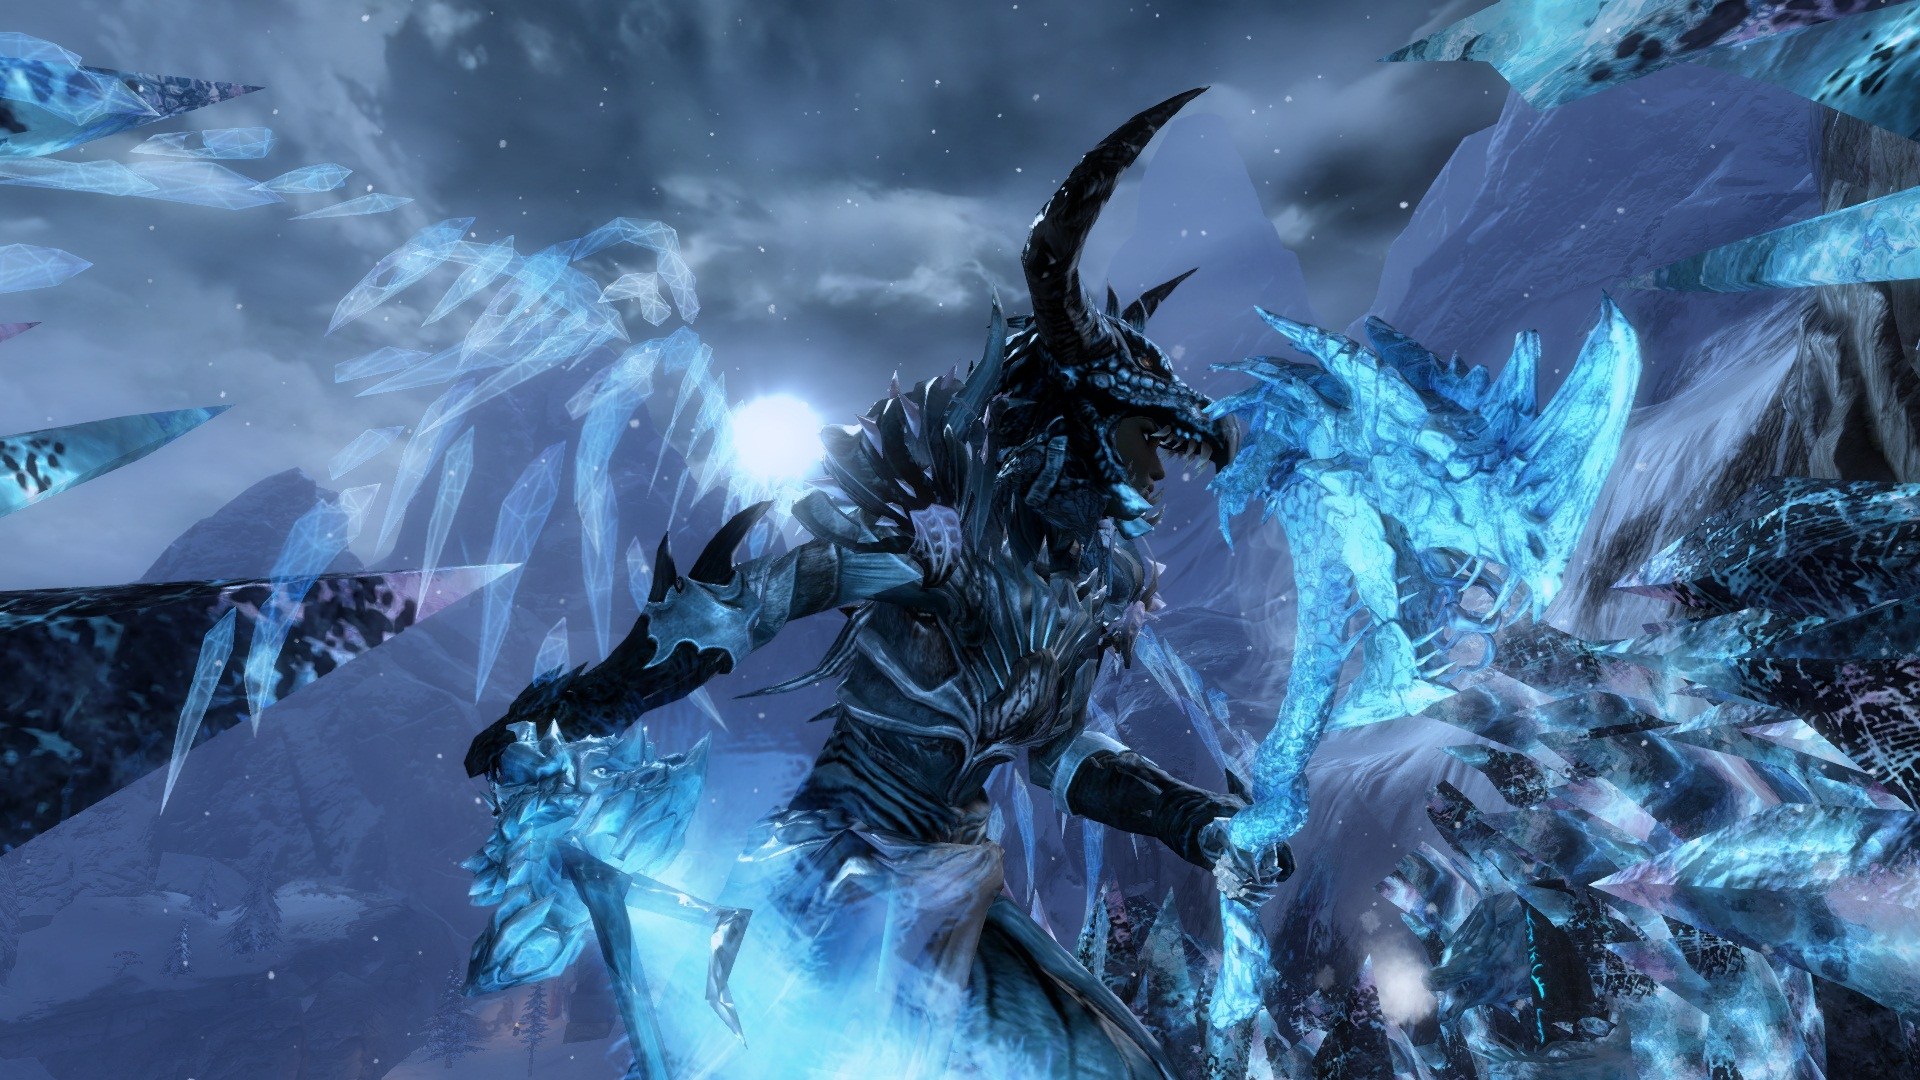 Dextra the Corrupted Ice Dragon Guild Wars 2 1920x1080